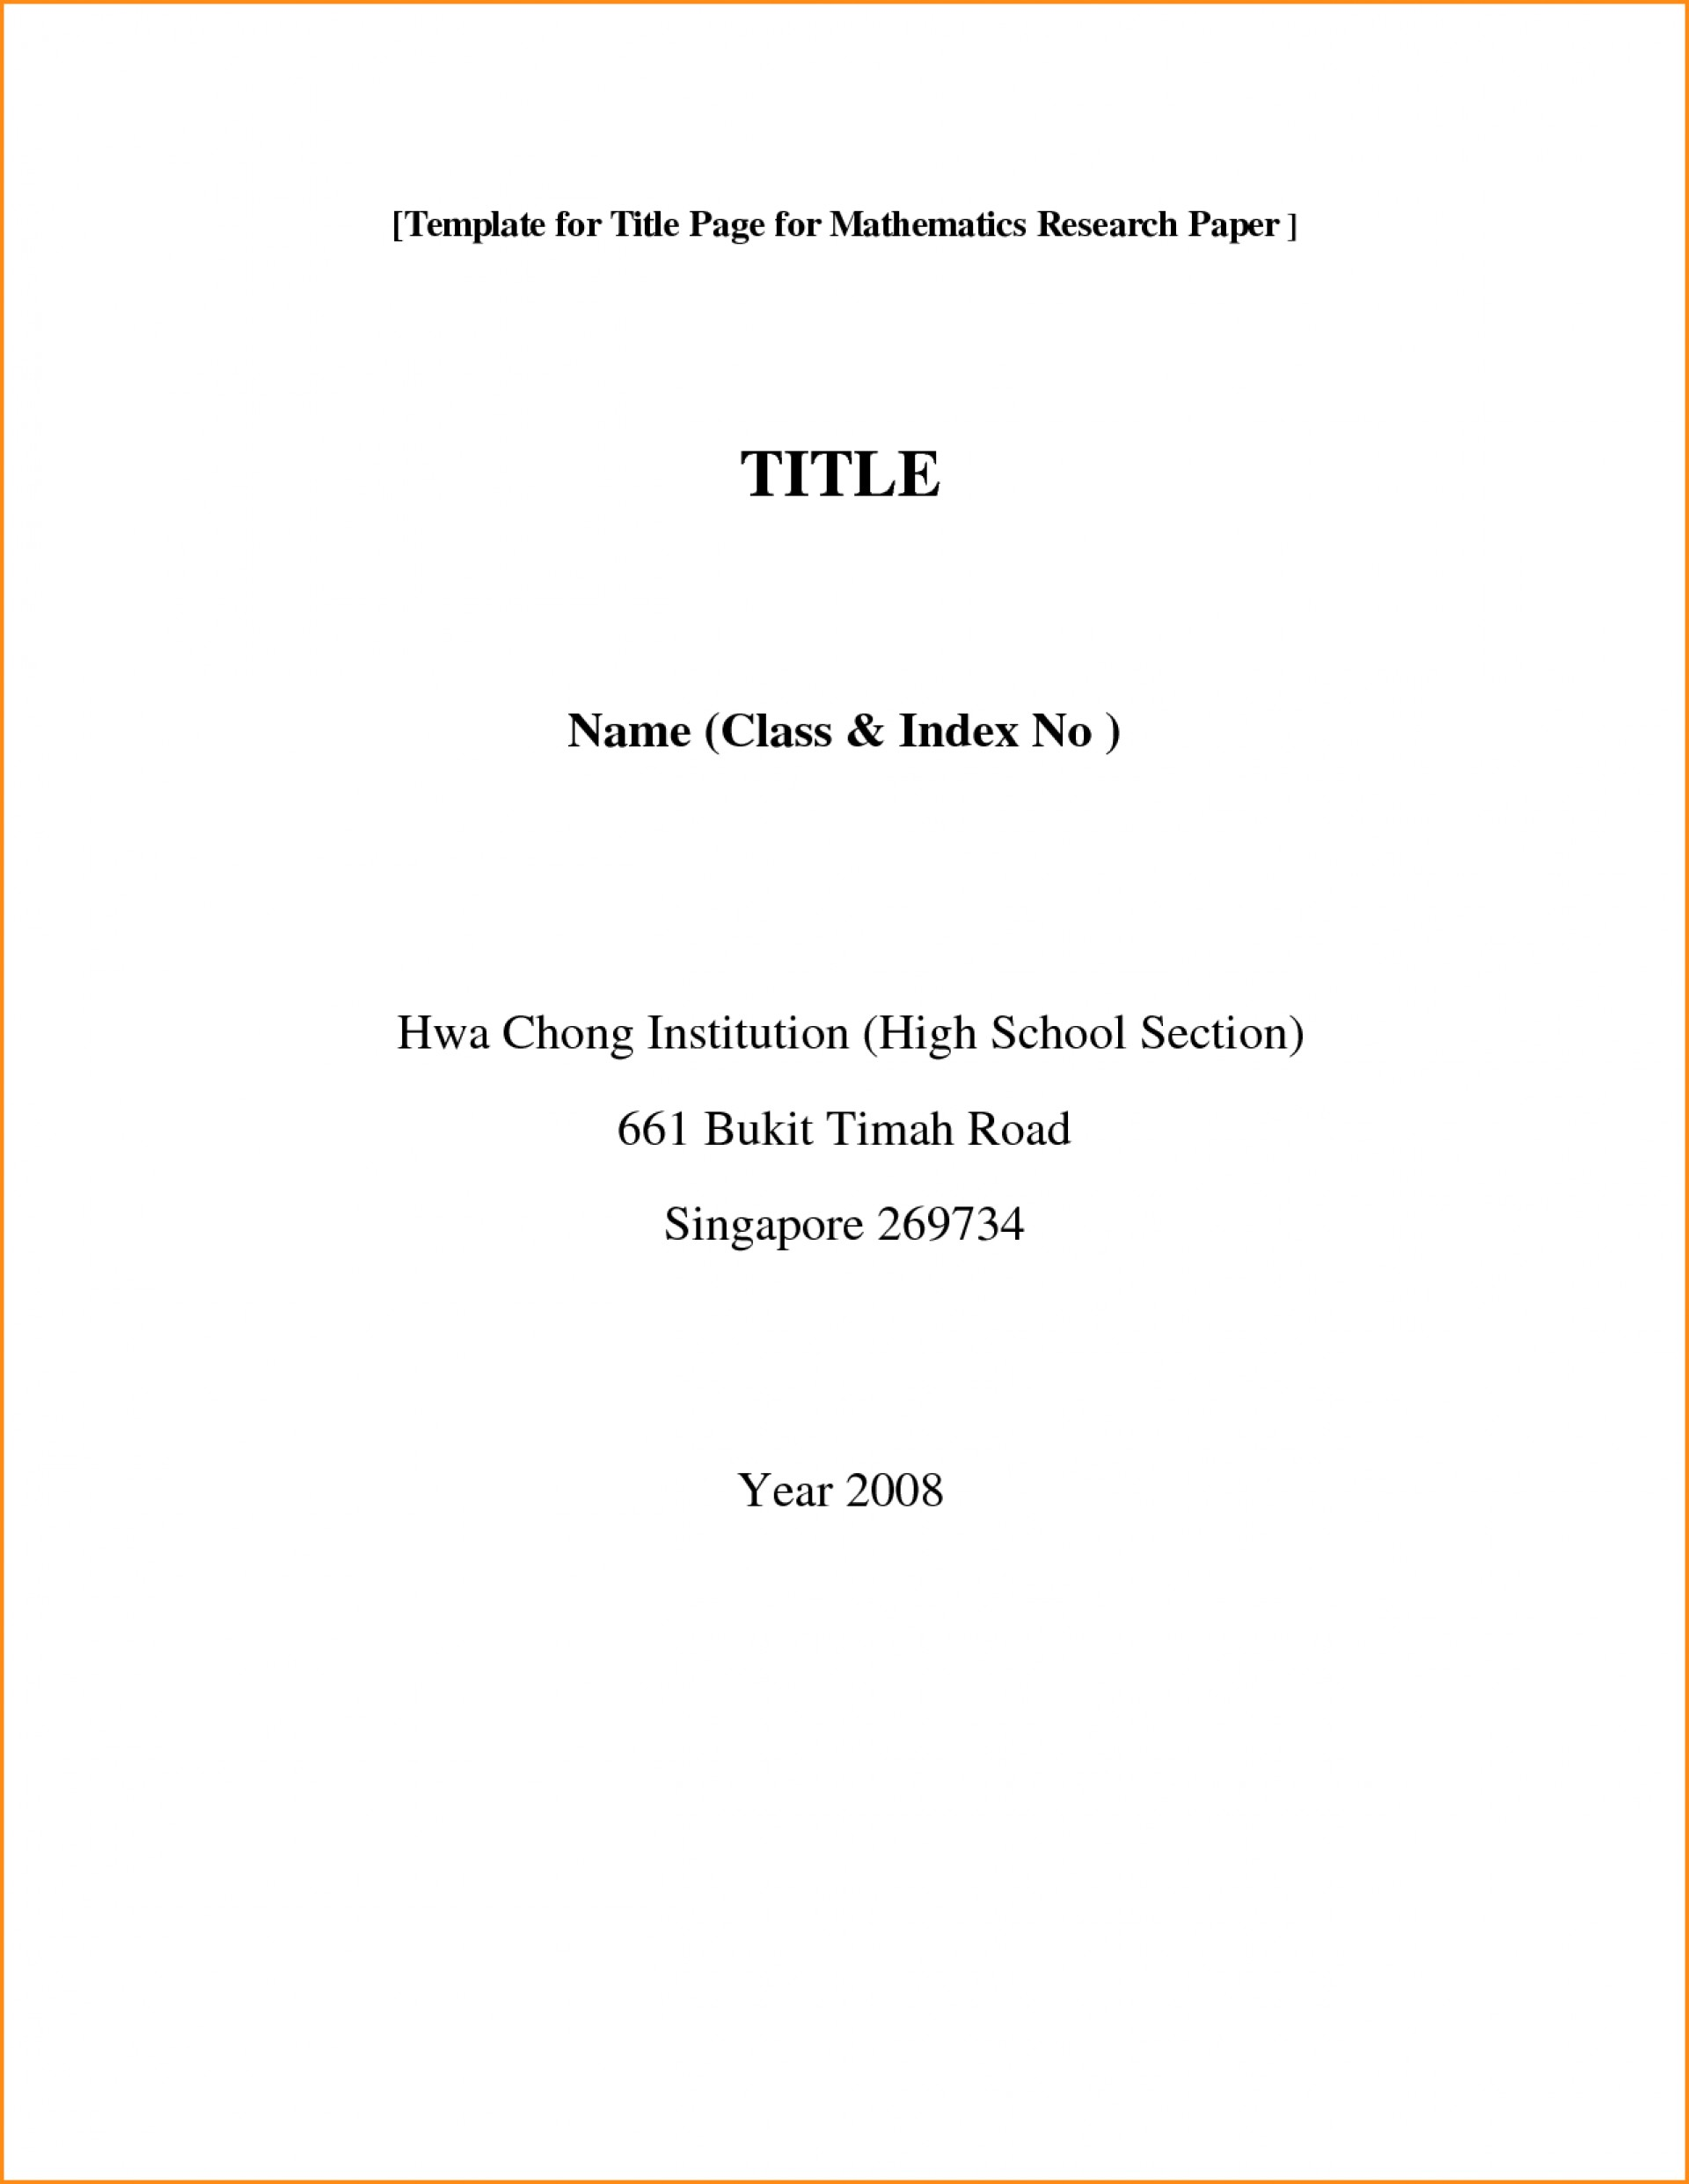 002 Front Page Of Research Paper Format Cover For Essay Phenomenal Chicago Style Apa Mla 1920